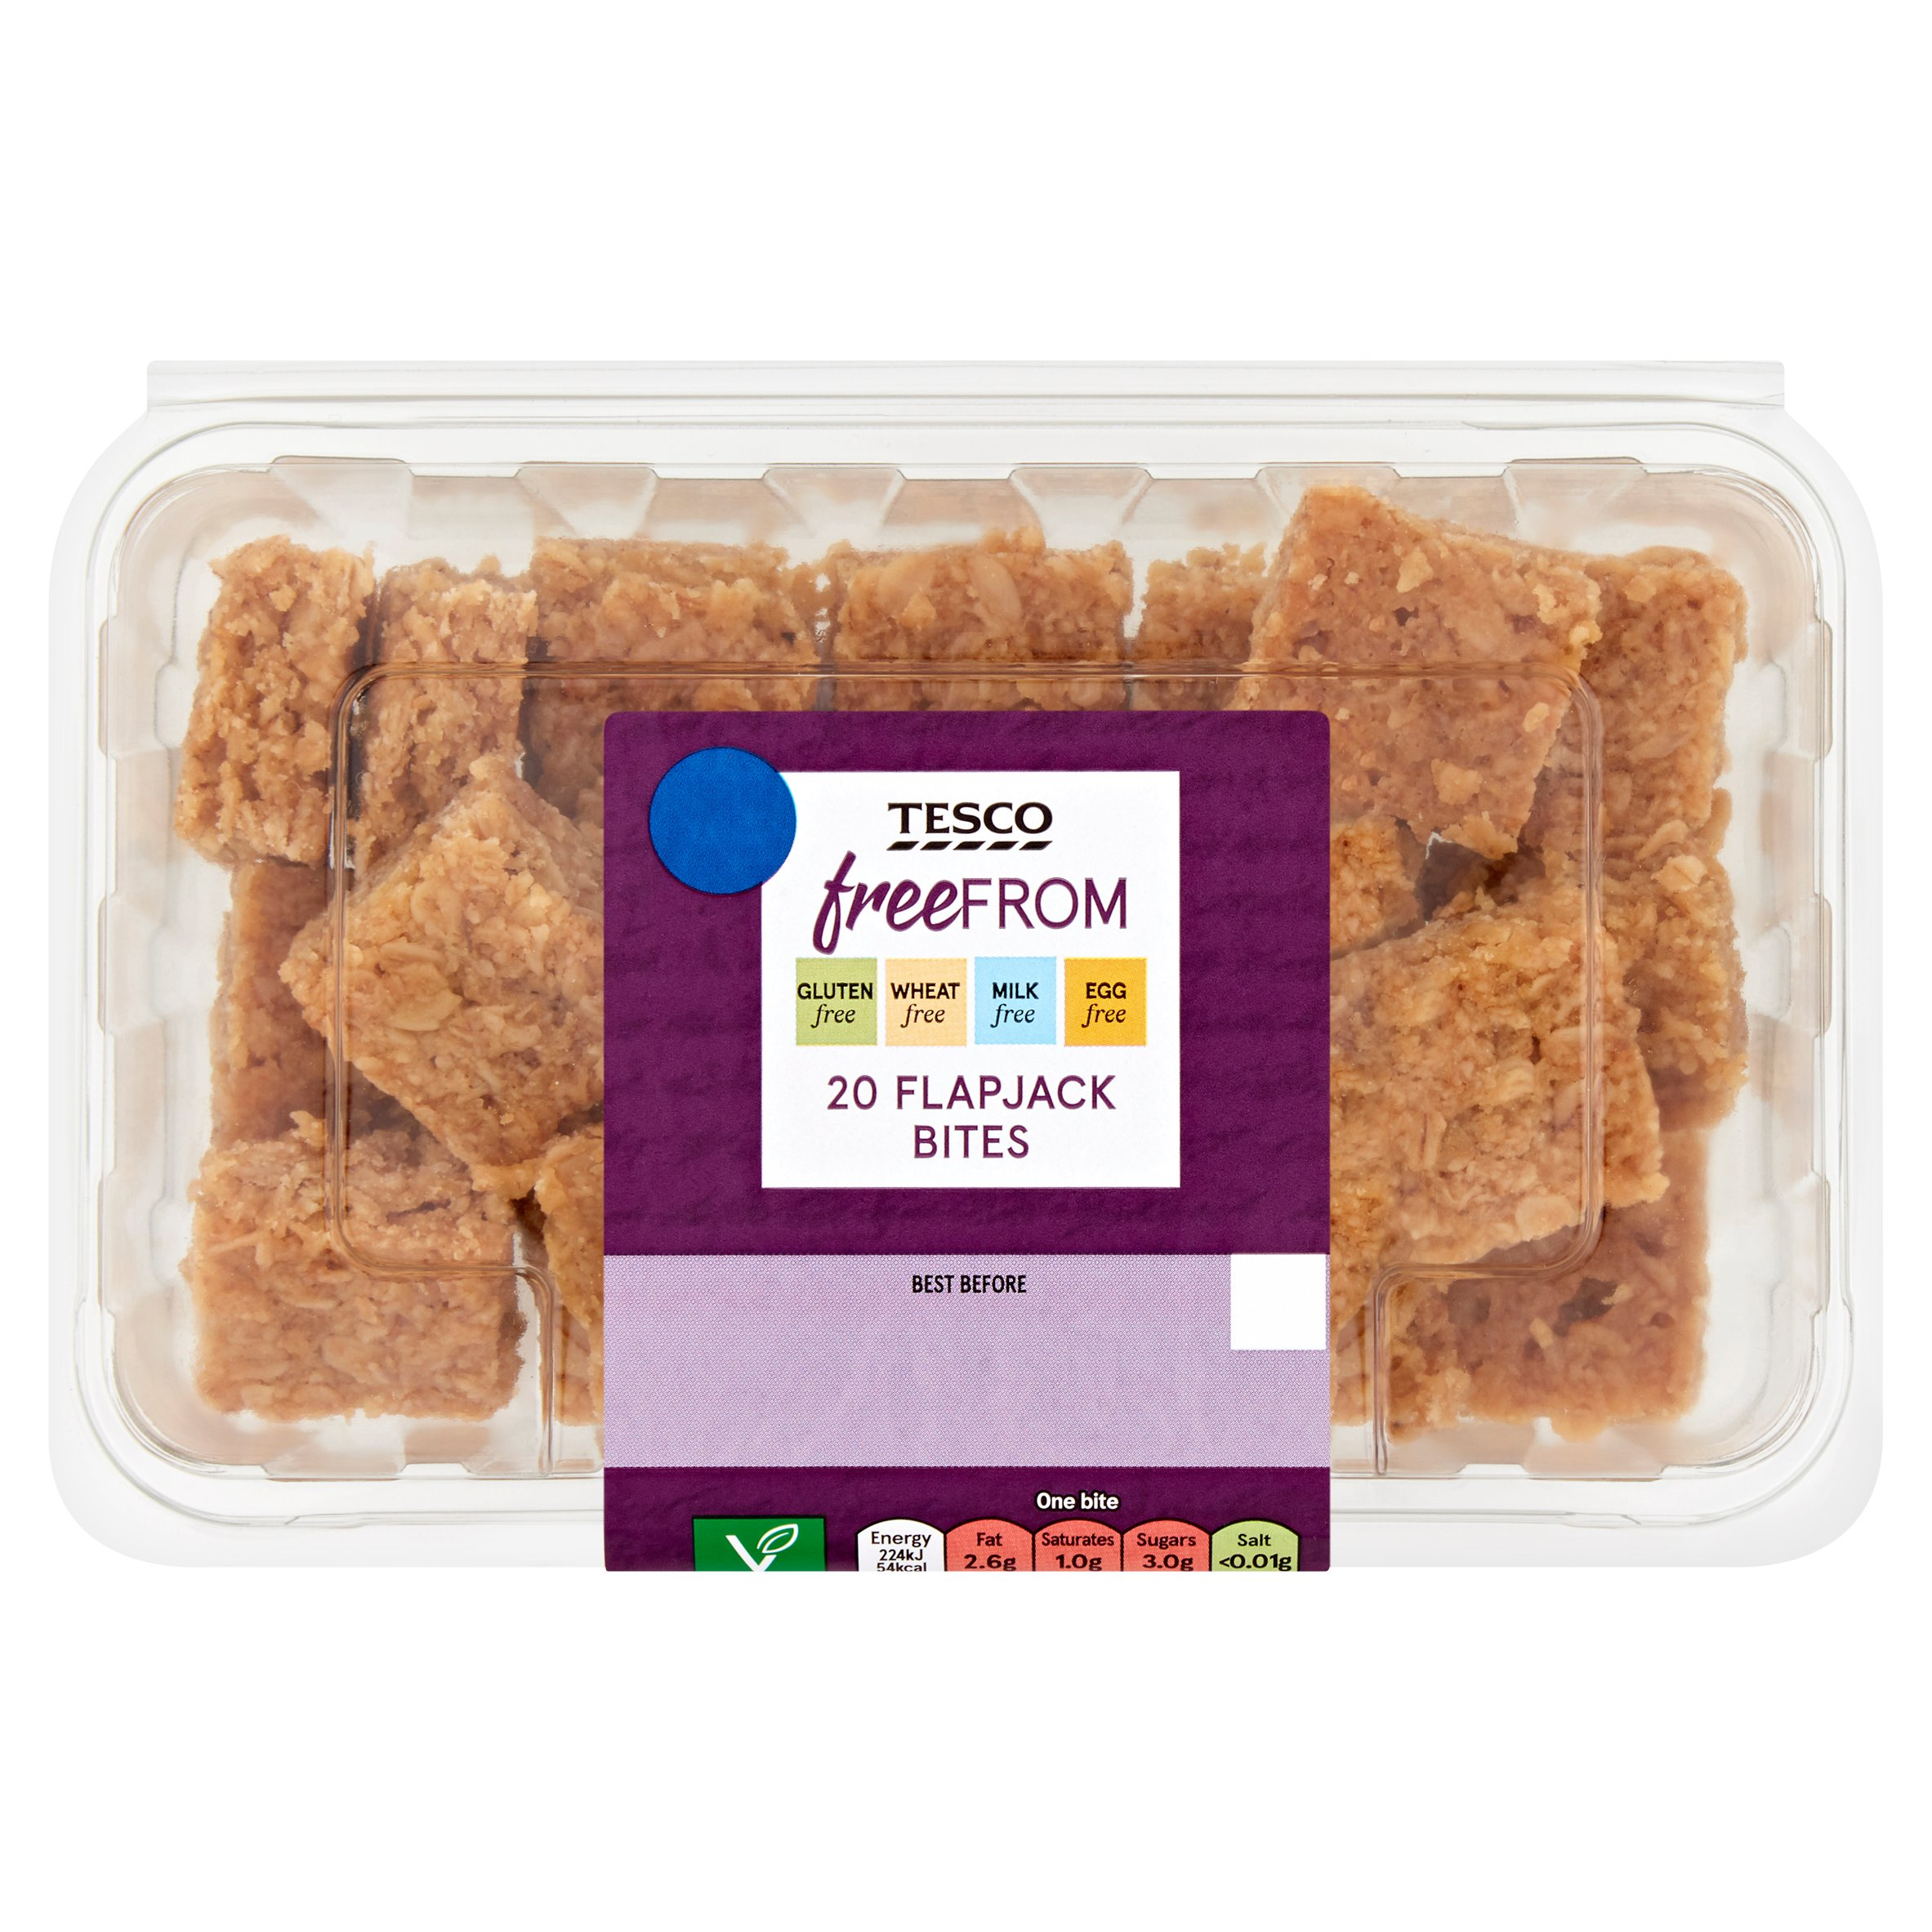 Tesco Free From Flapjack Bites 20 Pack